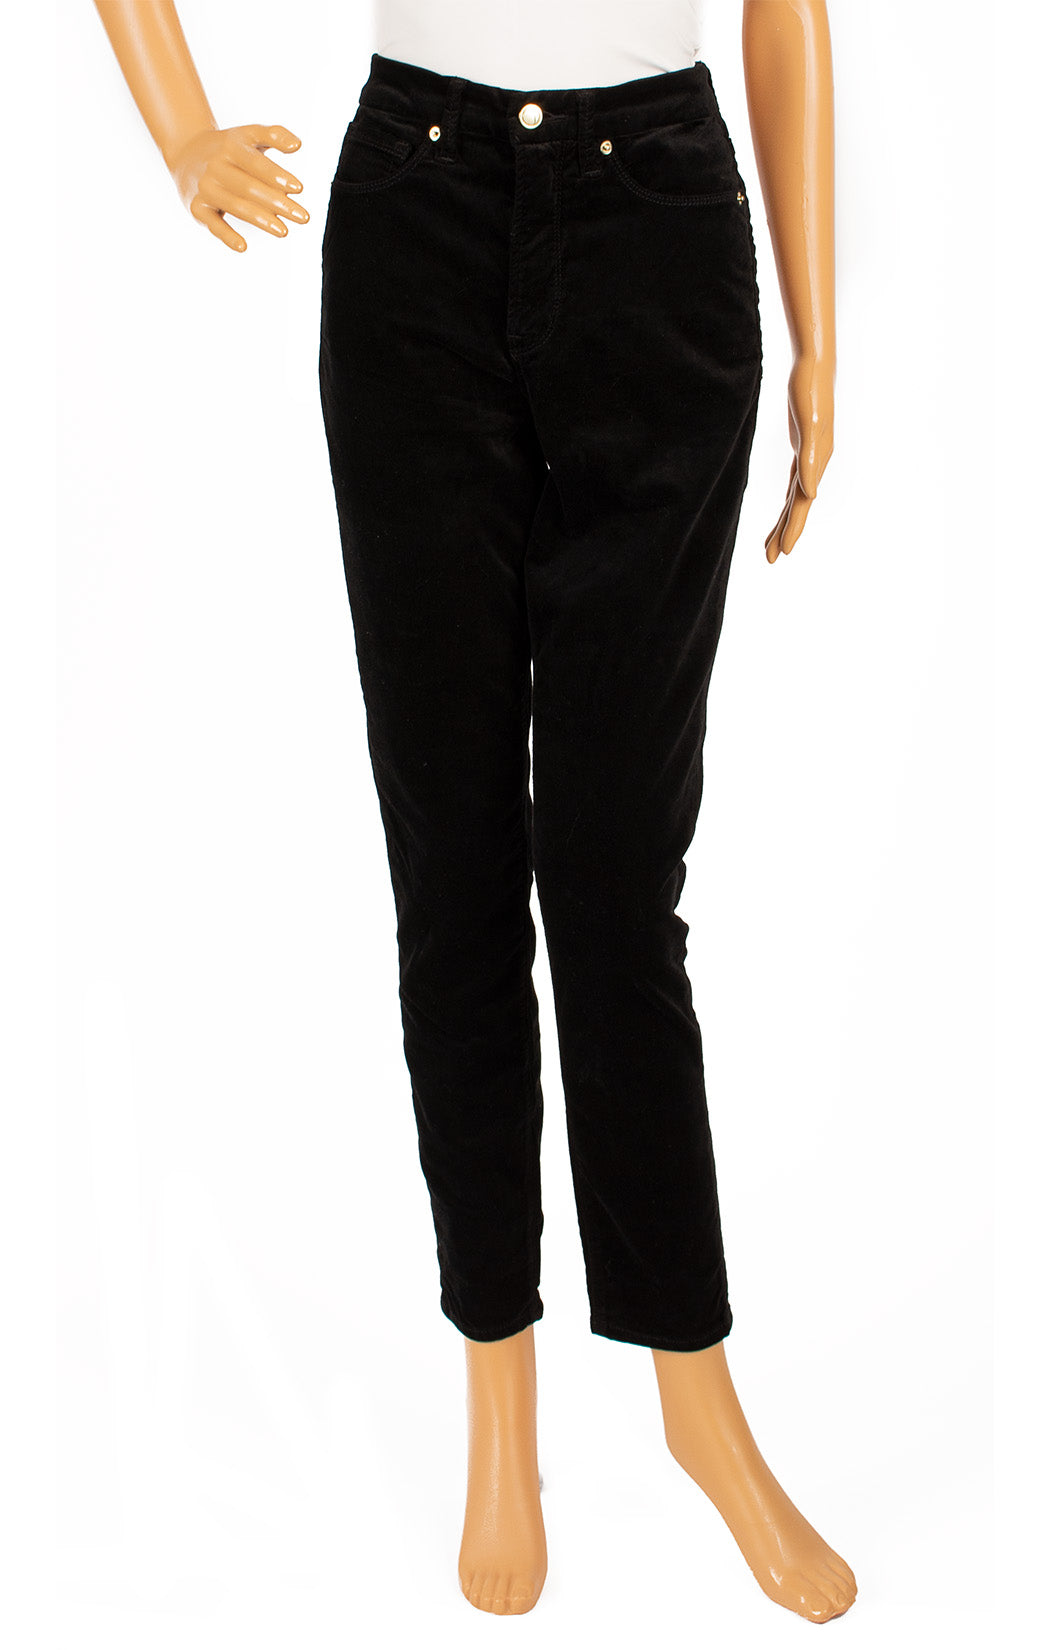 Front view of GOOD AMERICAN Pants Size: 29W